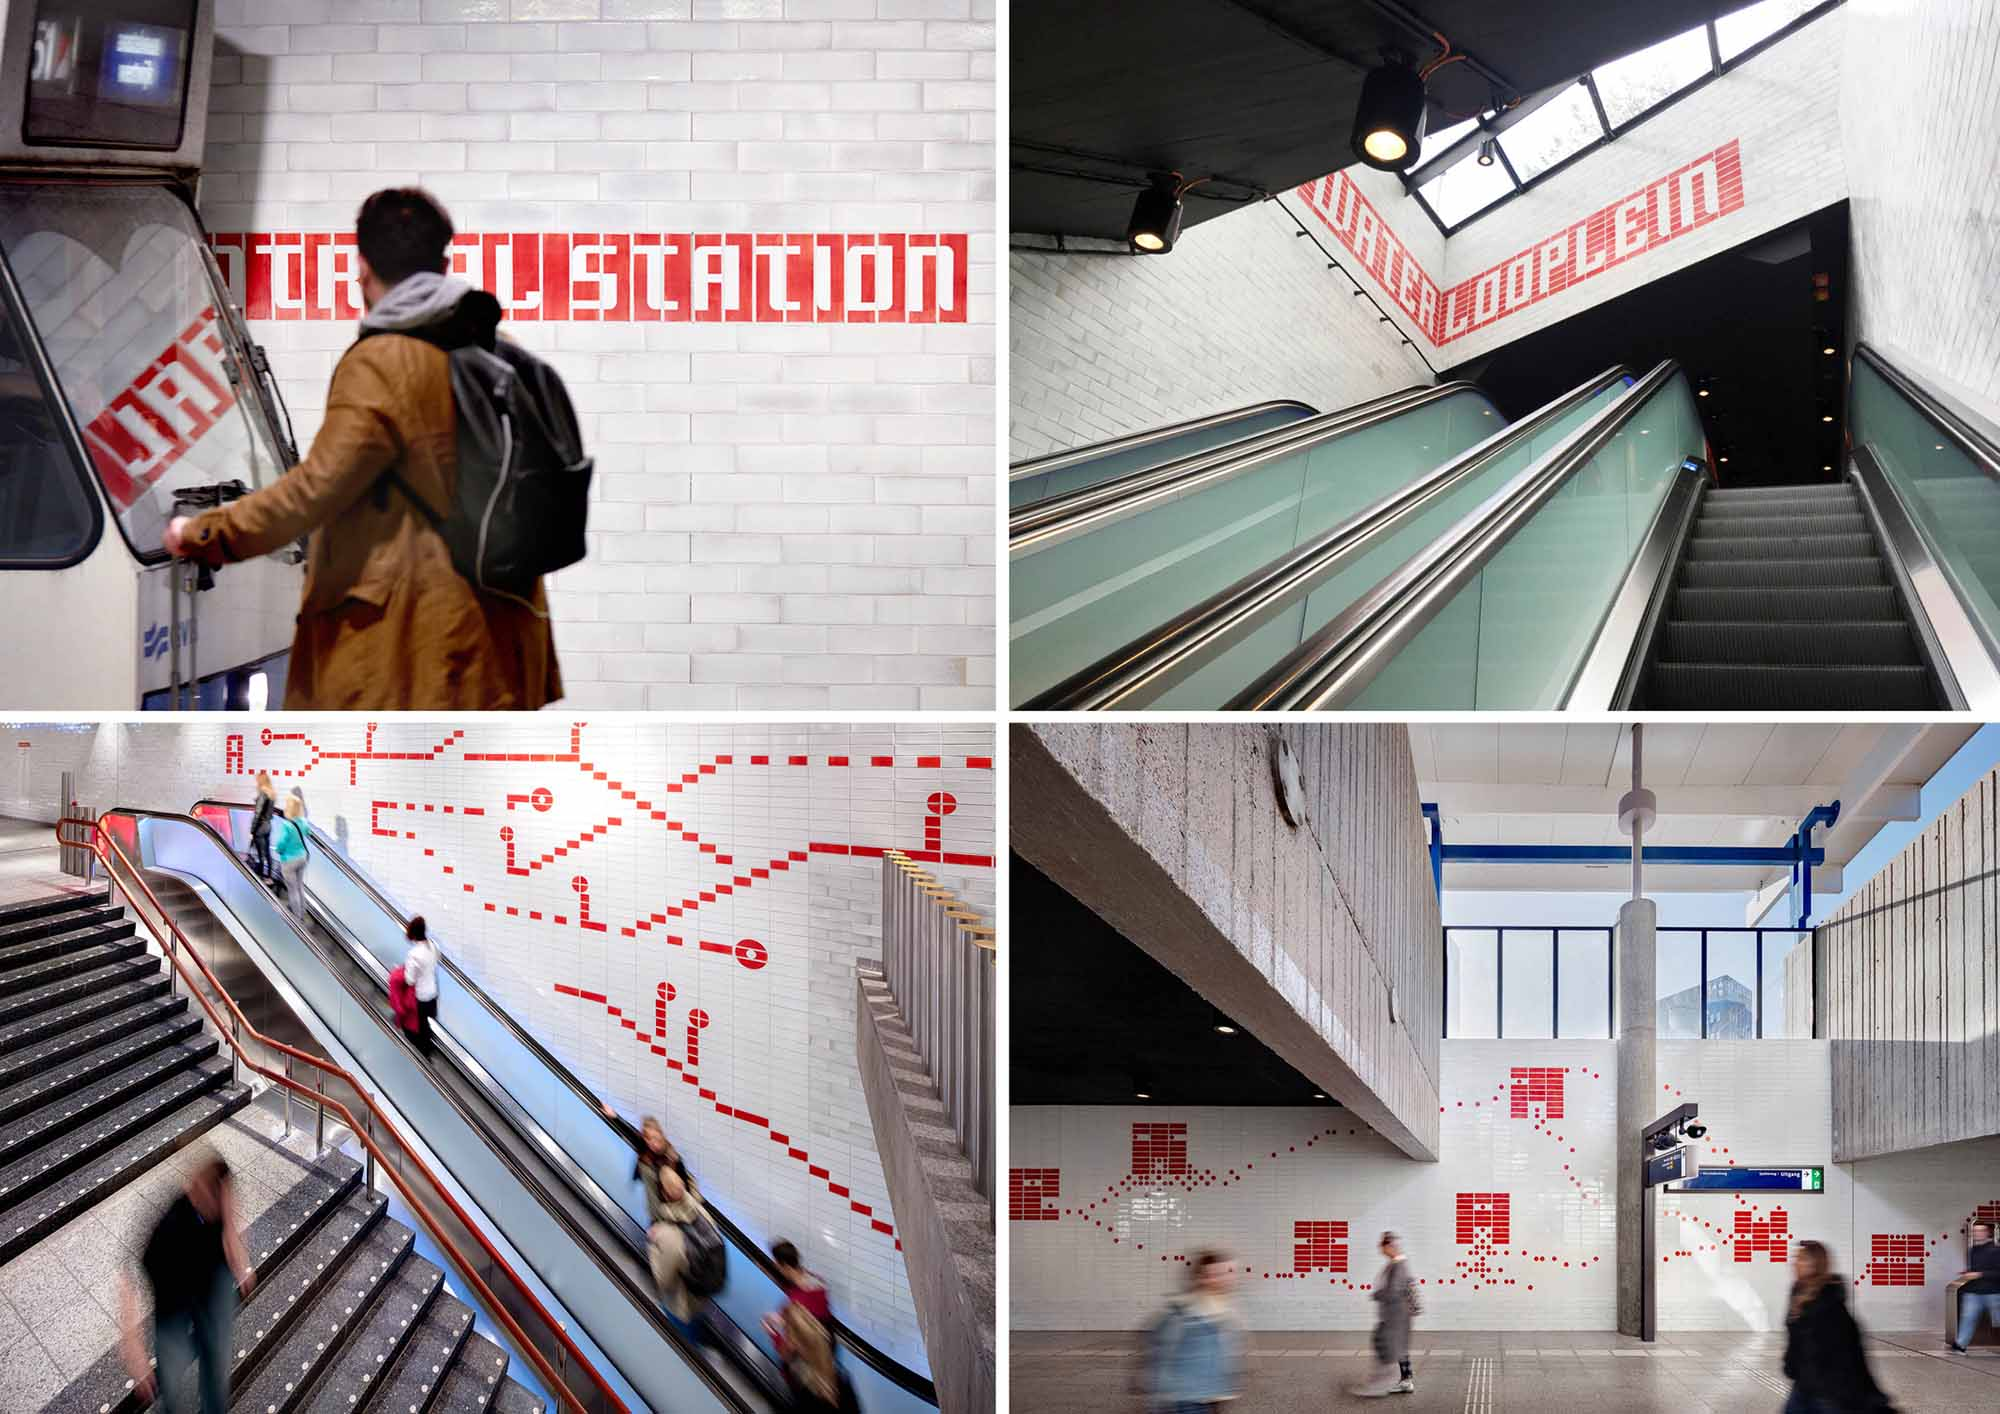 Station names and tile patterns strengthen the Oostlijn identity GROUP A}